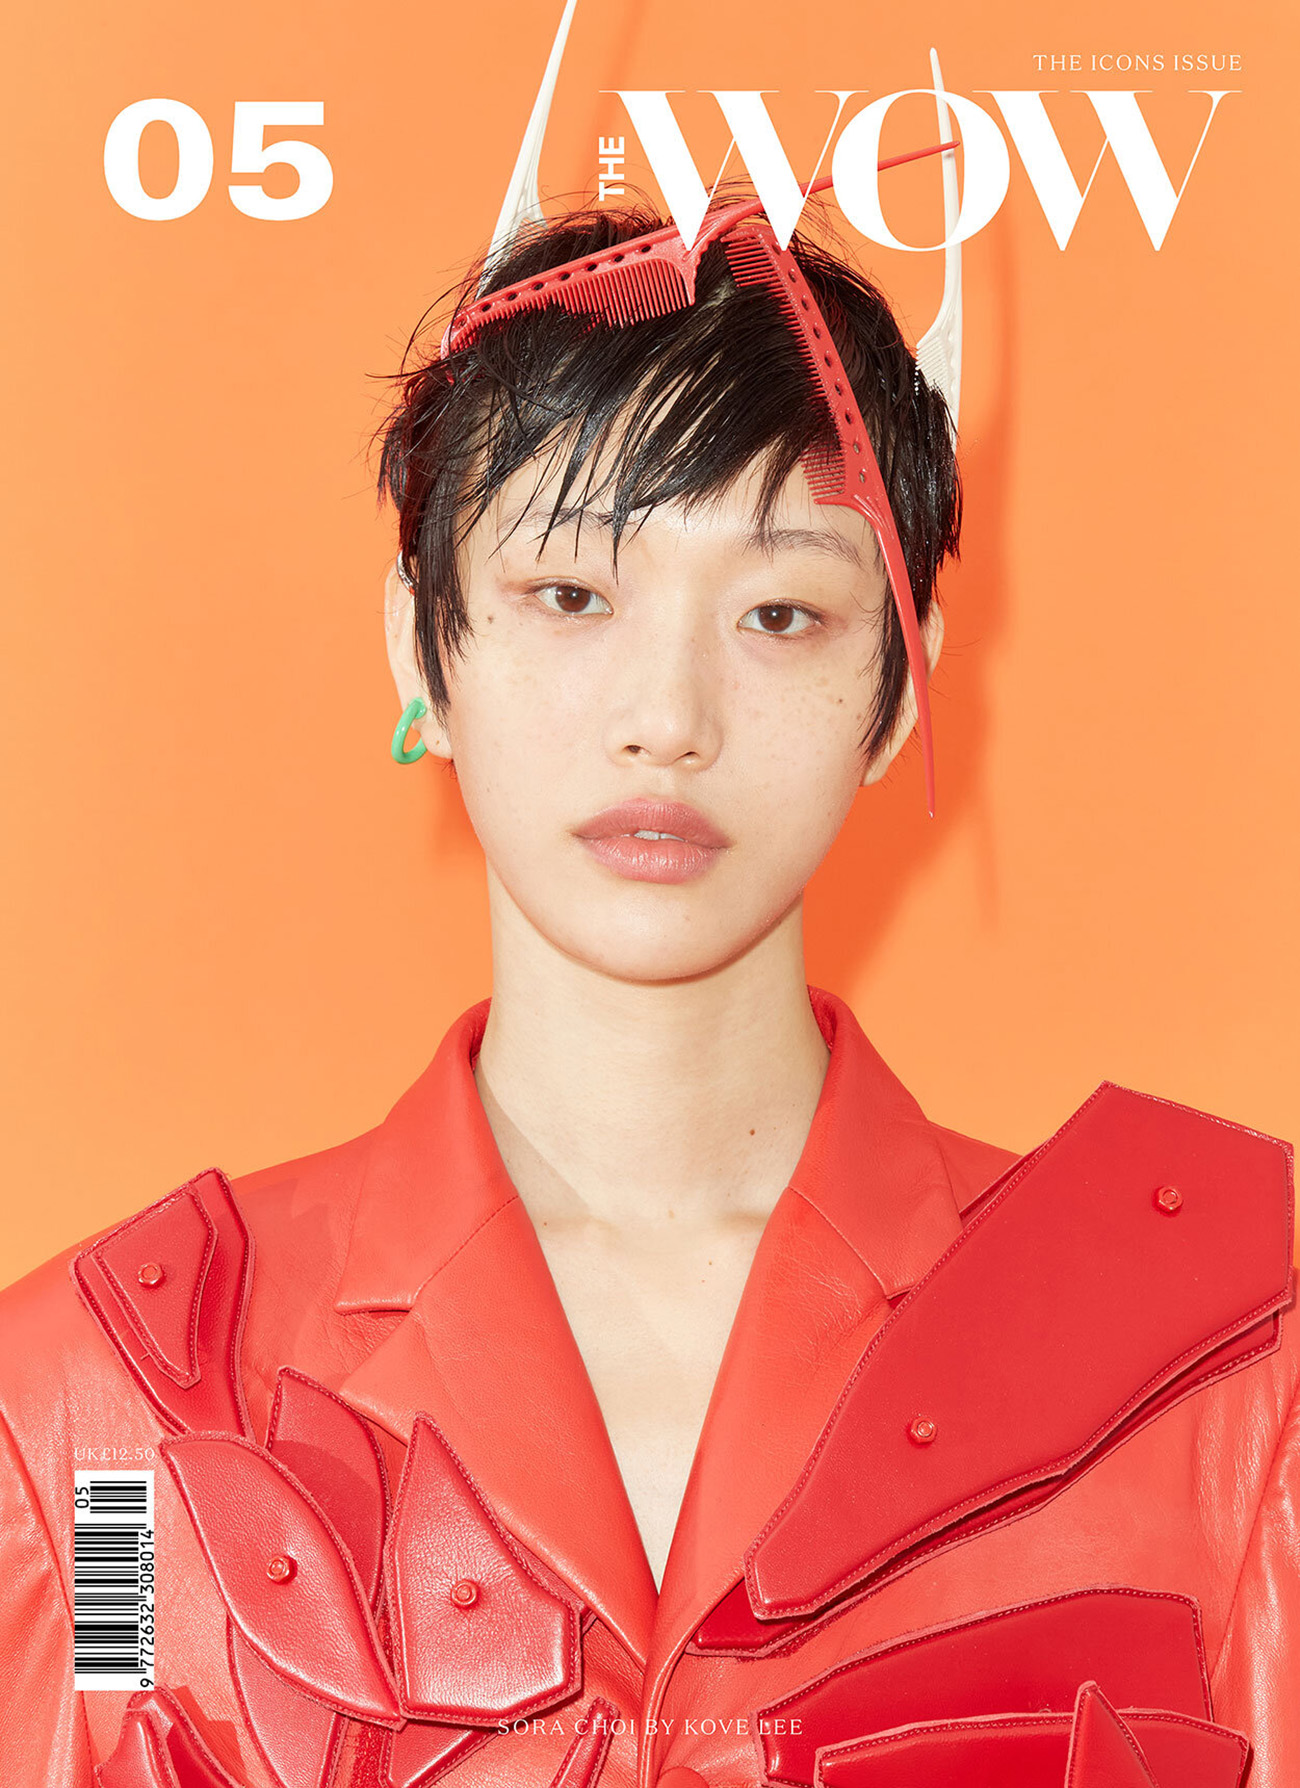 Sora Choi covers The WOW Magazine Issue 5 2021 by Kove Lee